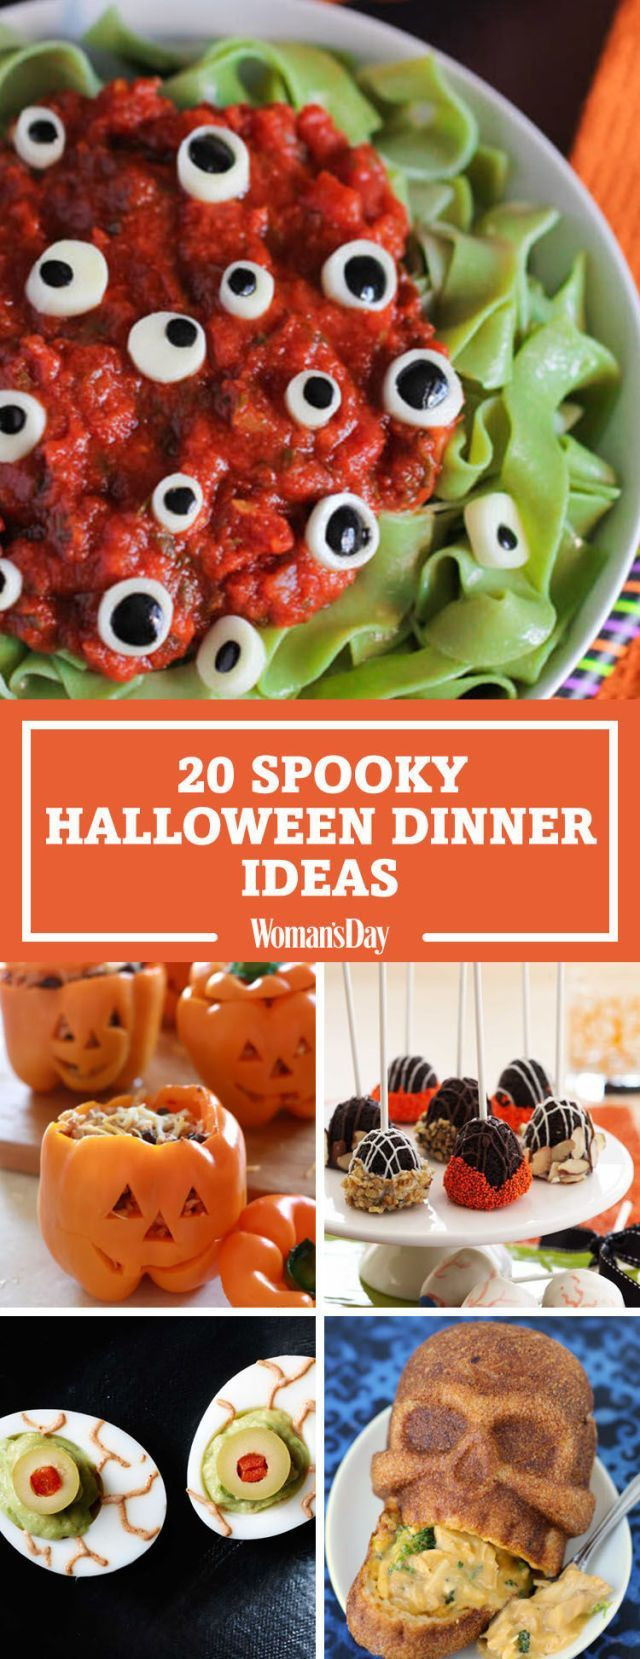 Easy Halloween Dinners  25 Spooky Halloween Dinner Ideas